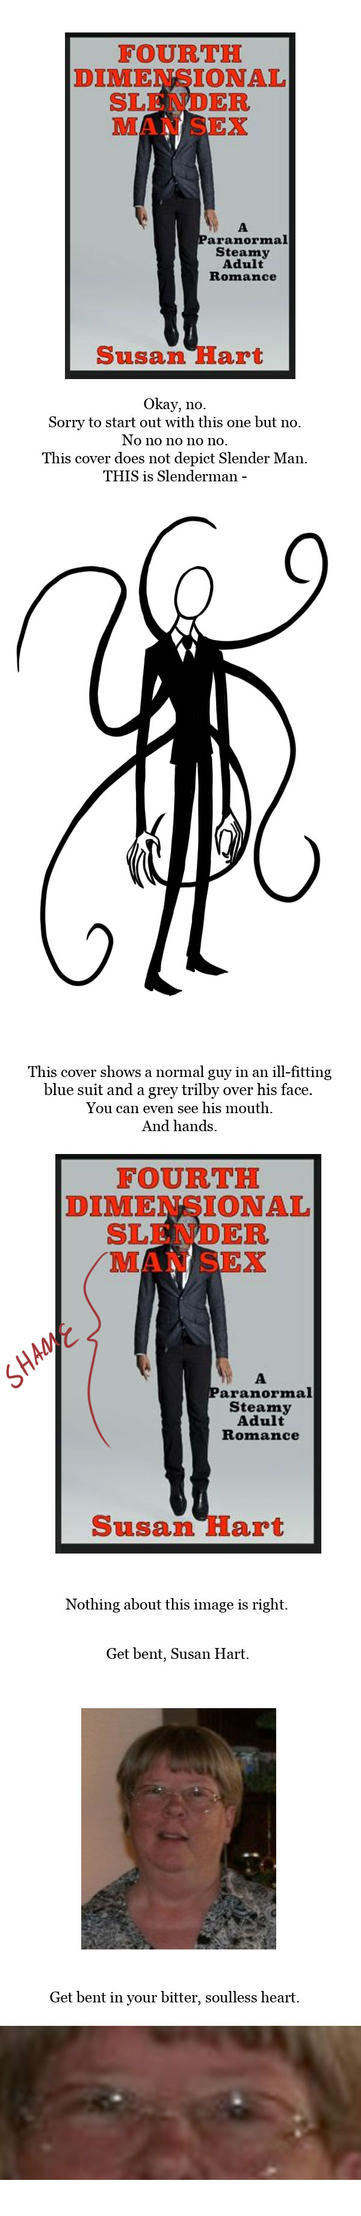 Ugly Book Covers: 4th Dimensional Slender Man Sex by RomanJones